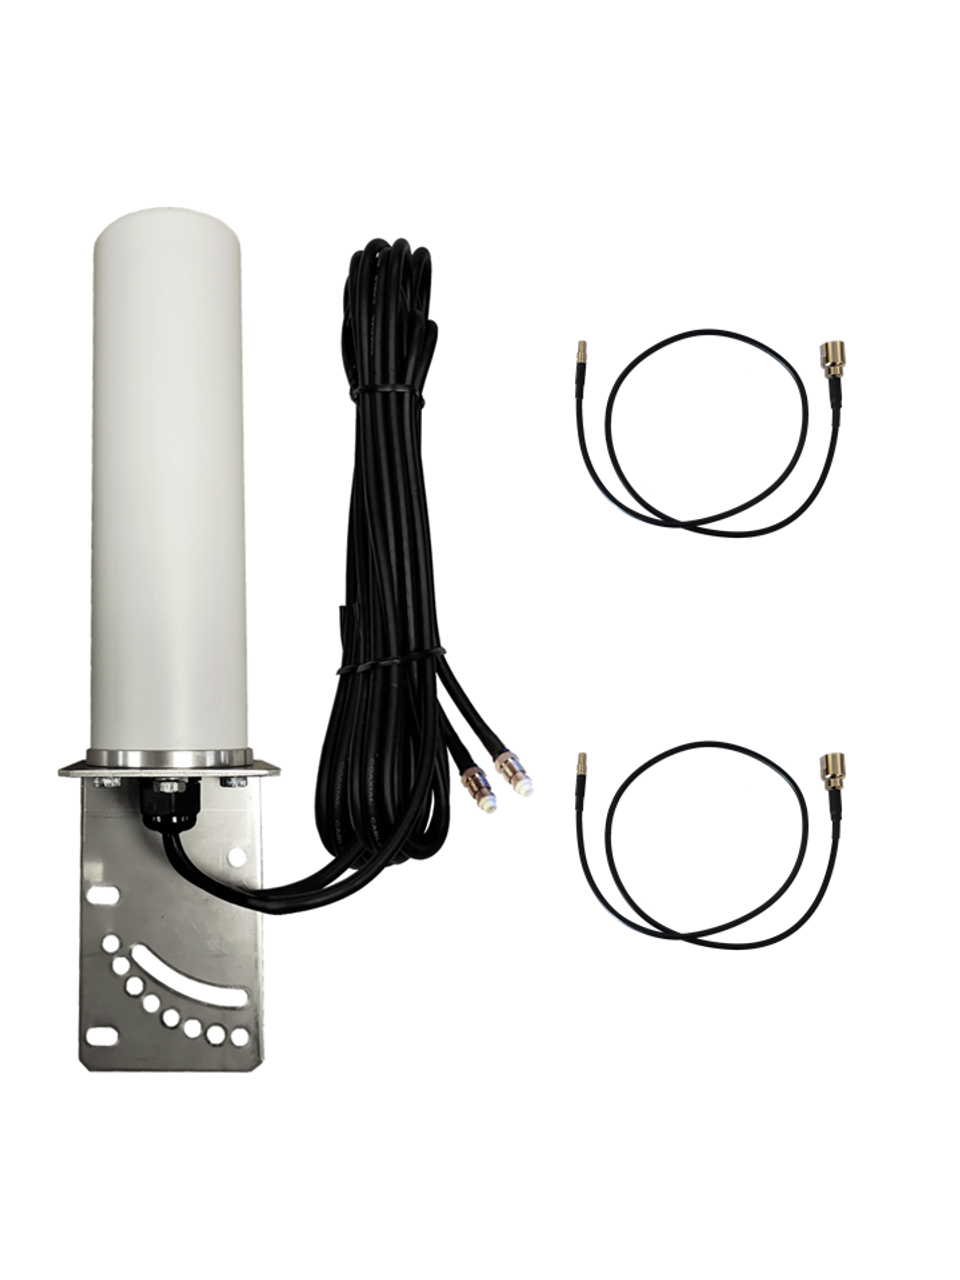 9dBi AT&T Netgear Nighthawk 5G MR5100-Pro Hotspot Omni Directional MIMO Dual Cellular 4G 5G LTE Antenna w/2 x 16 FT Coax Cables.